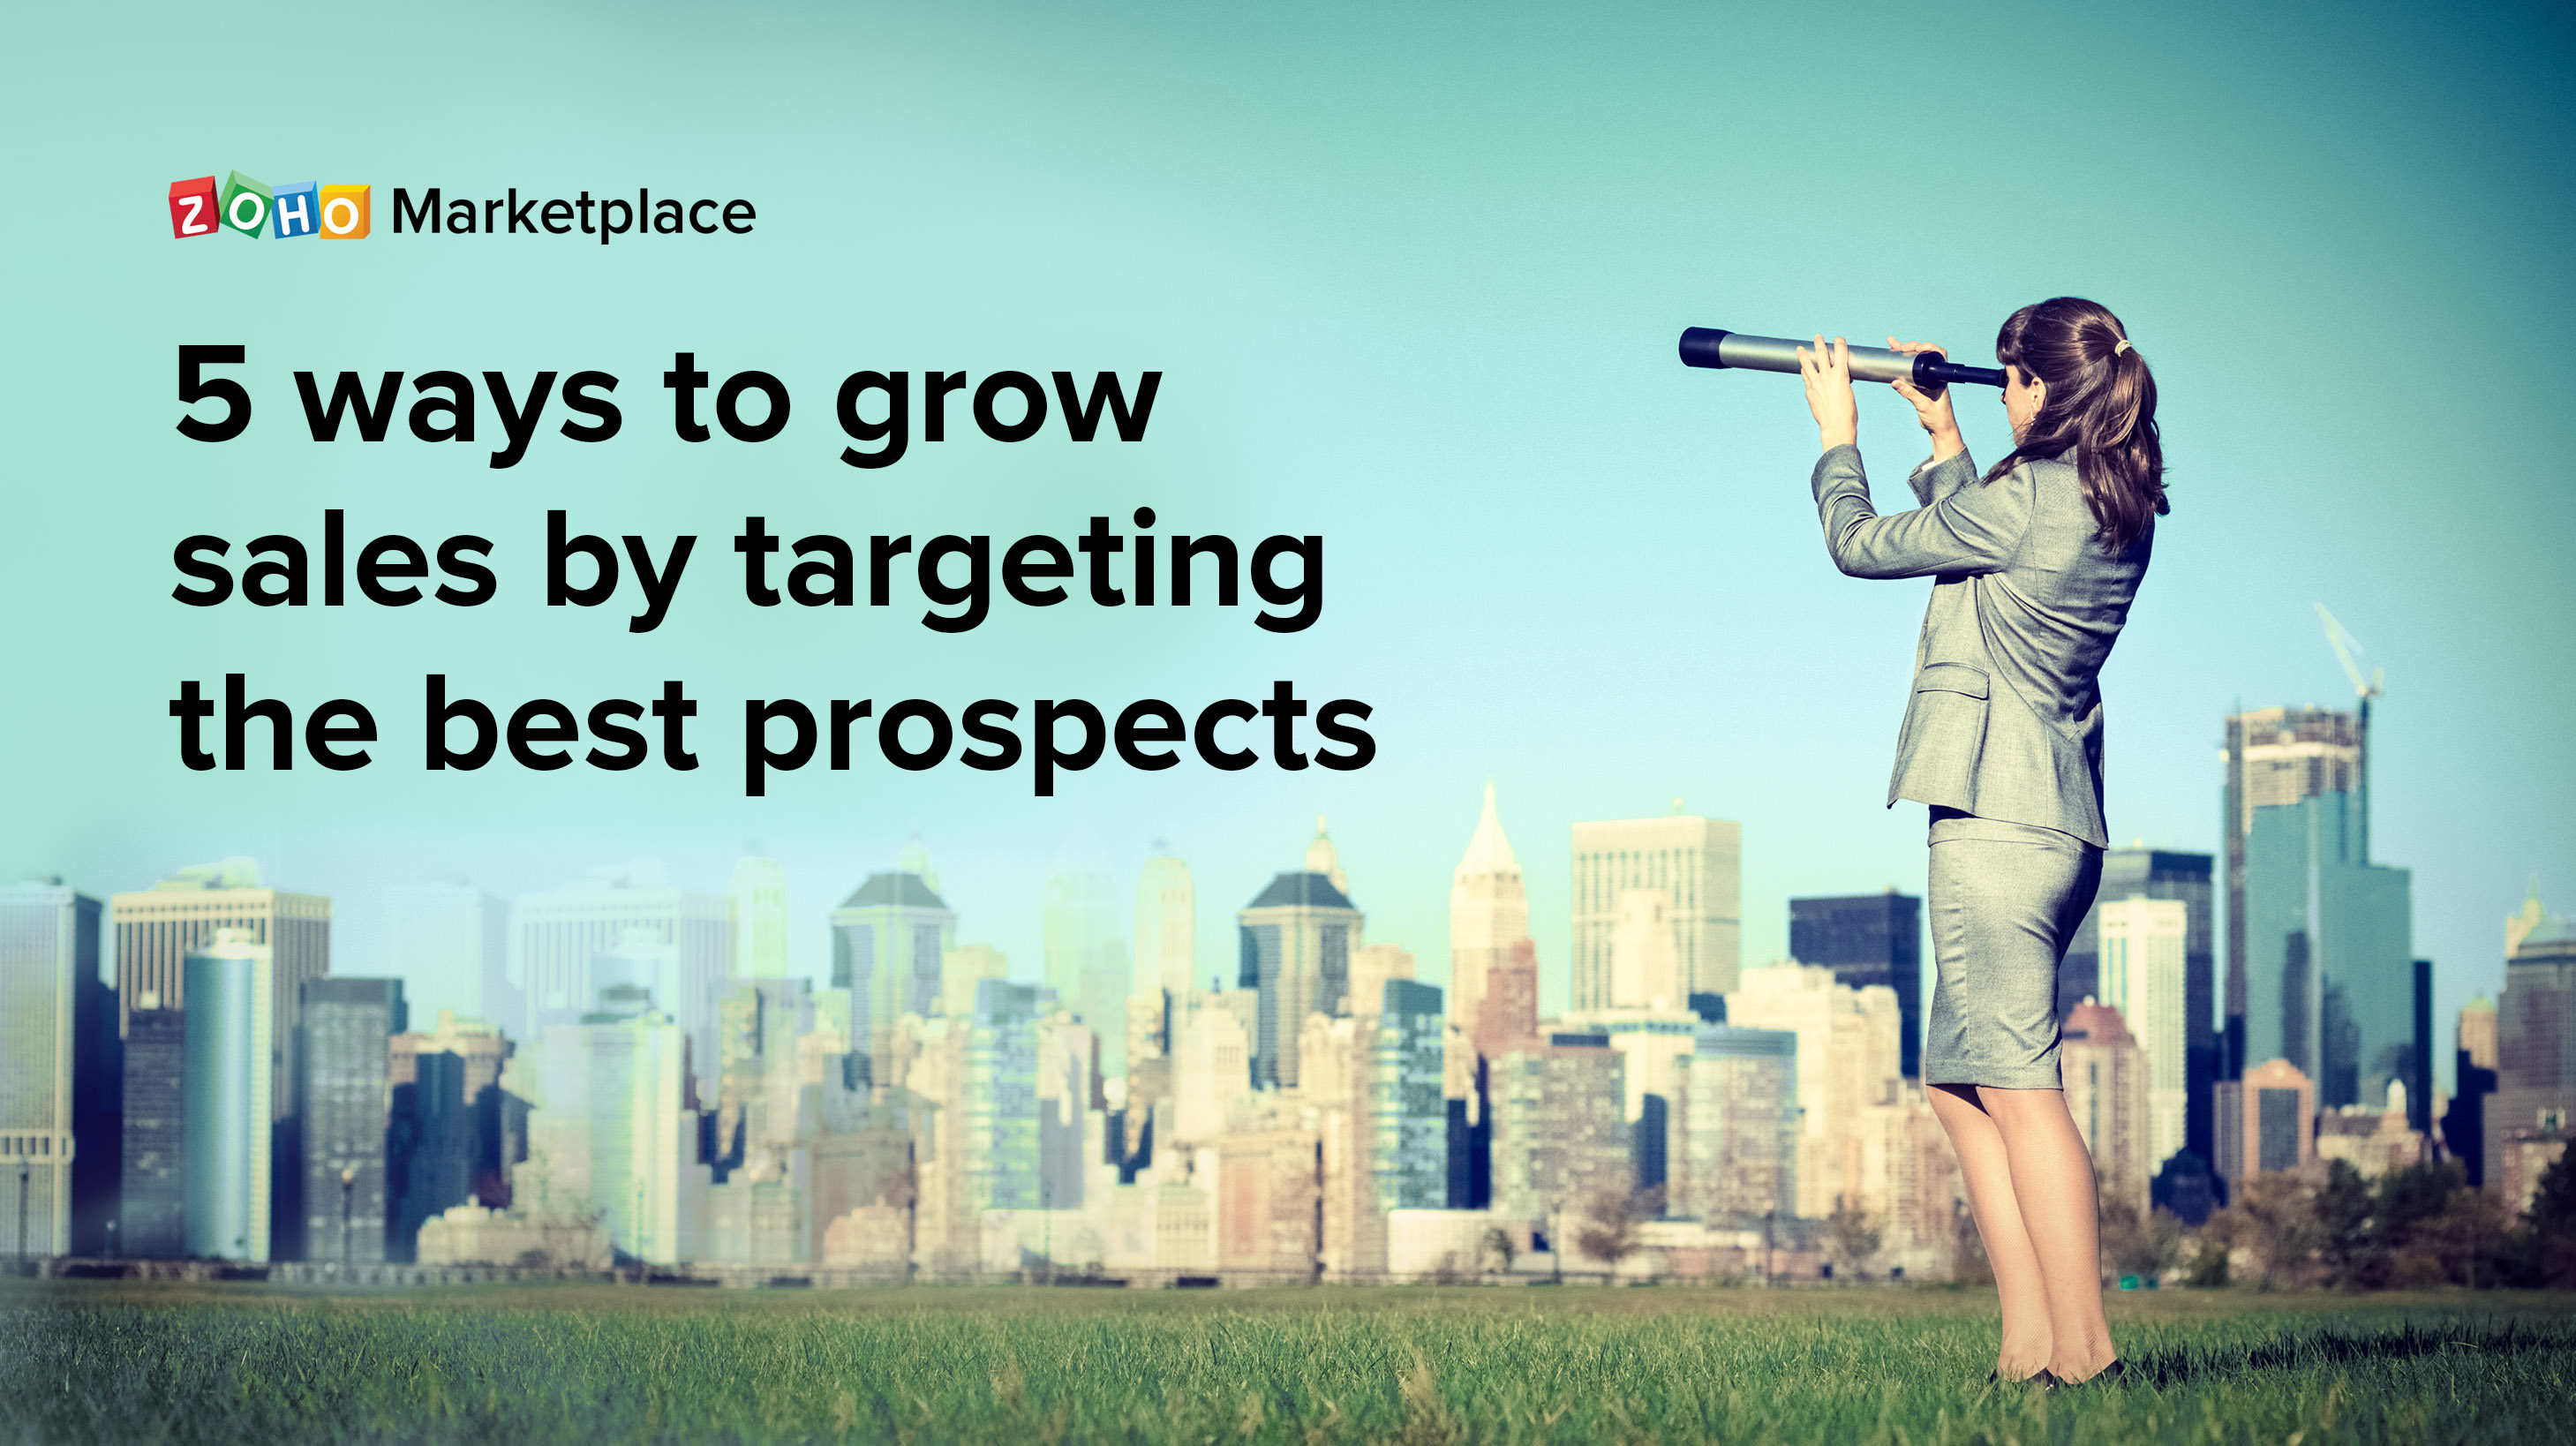 ProTips: 5 ways to grow sales by targeting the best prospects